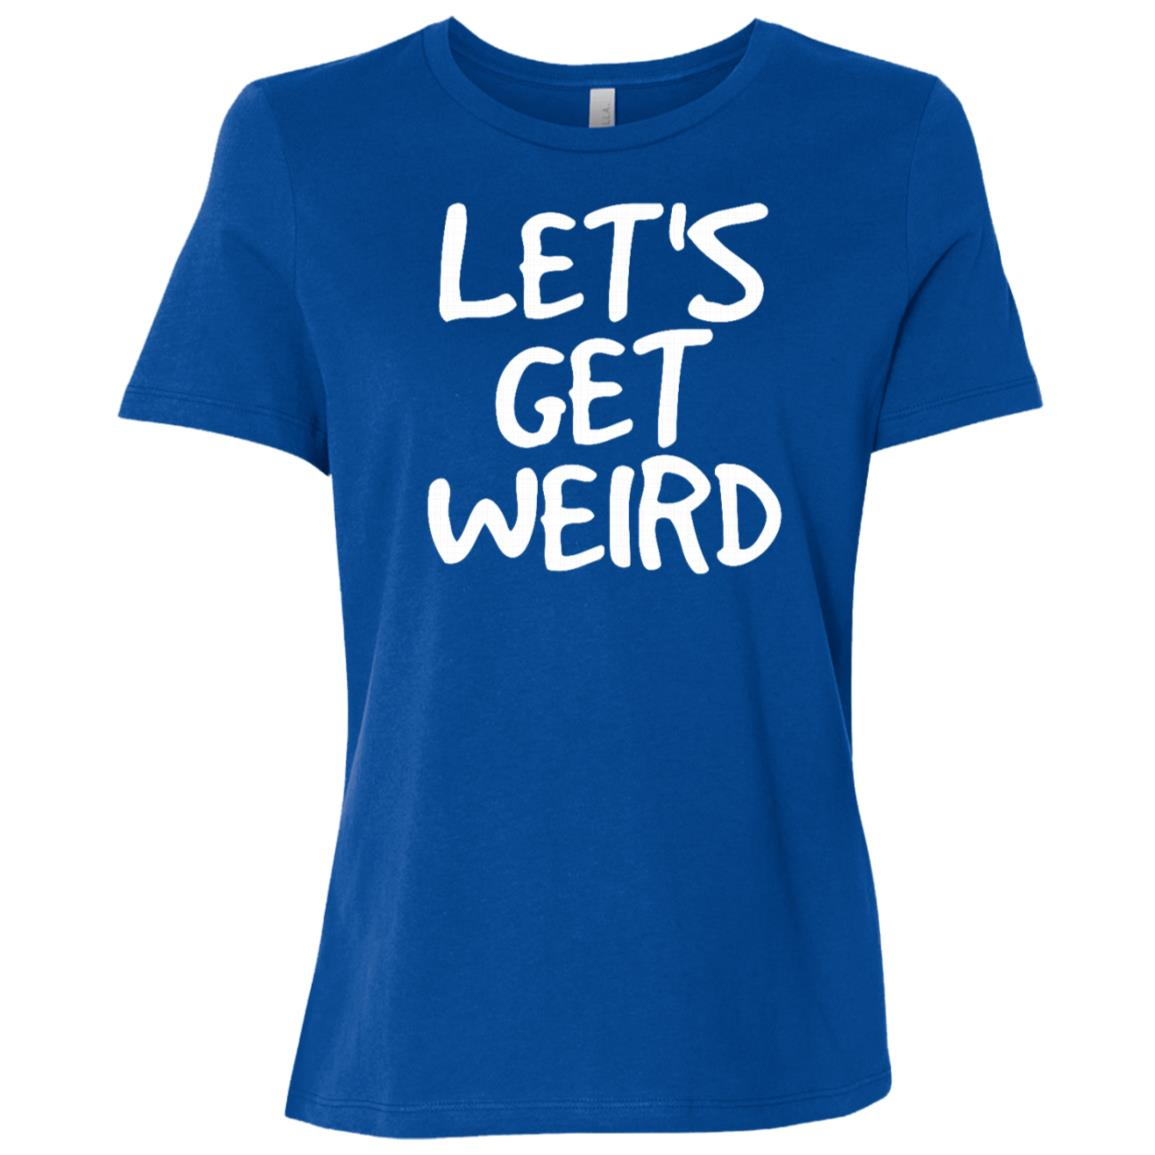 Let's Get Weird Funny Edm Alien Rave Party Gift Idea Women Short Sleeve T-Shirt